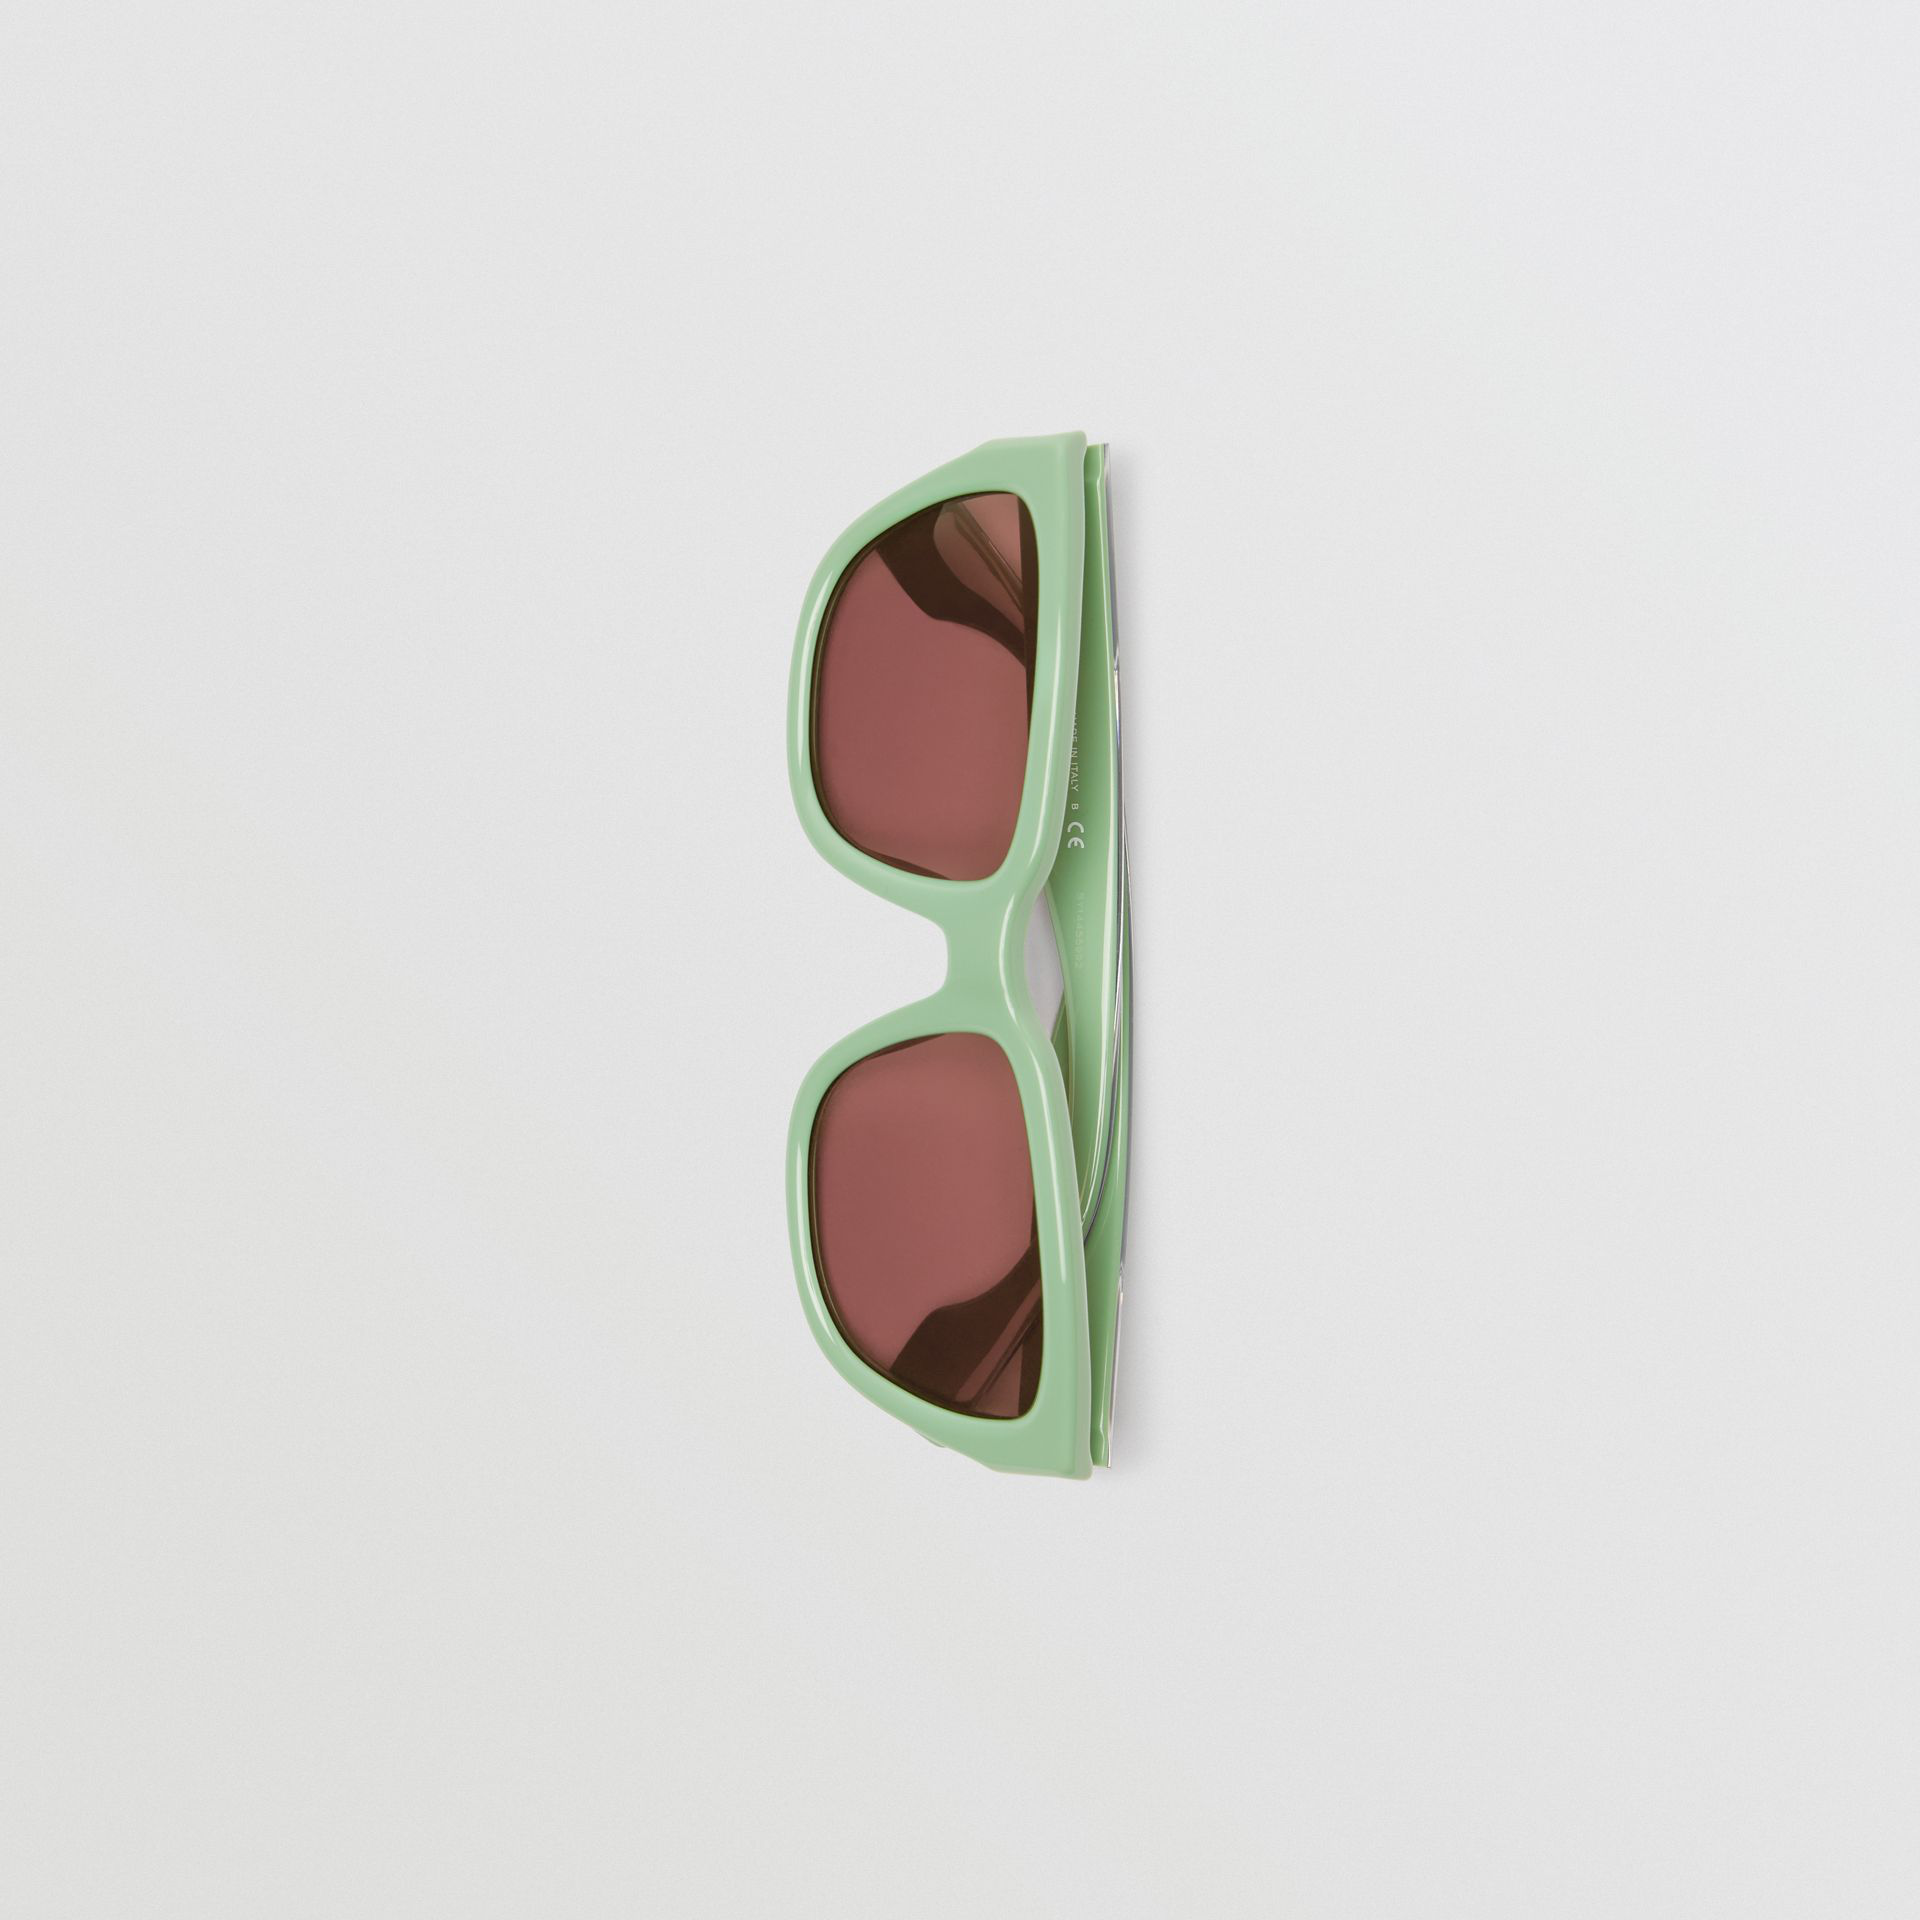 a5f8861fae3 Burberry Square Frame Sunglasses In Mint Green